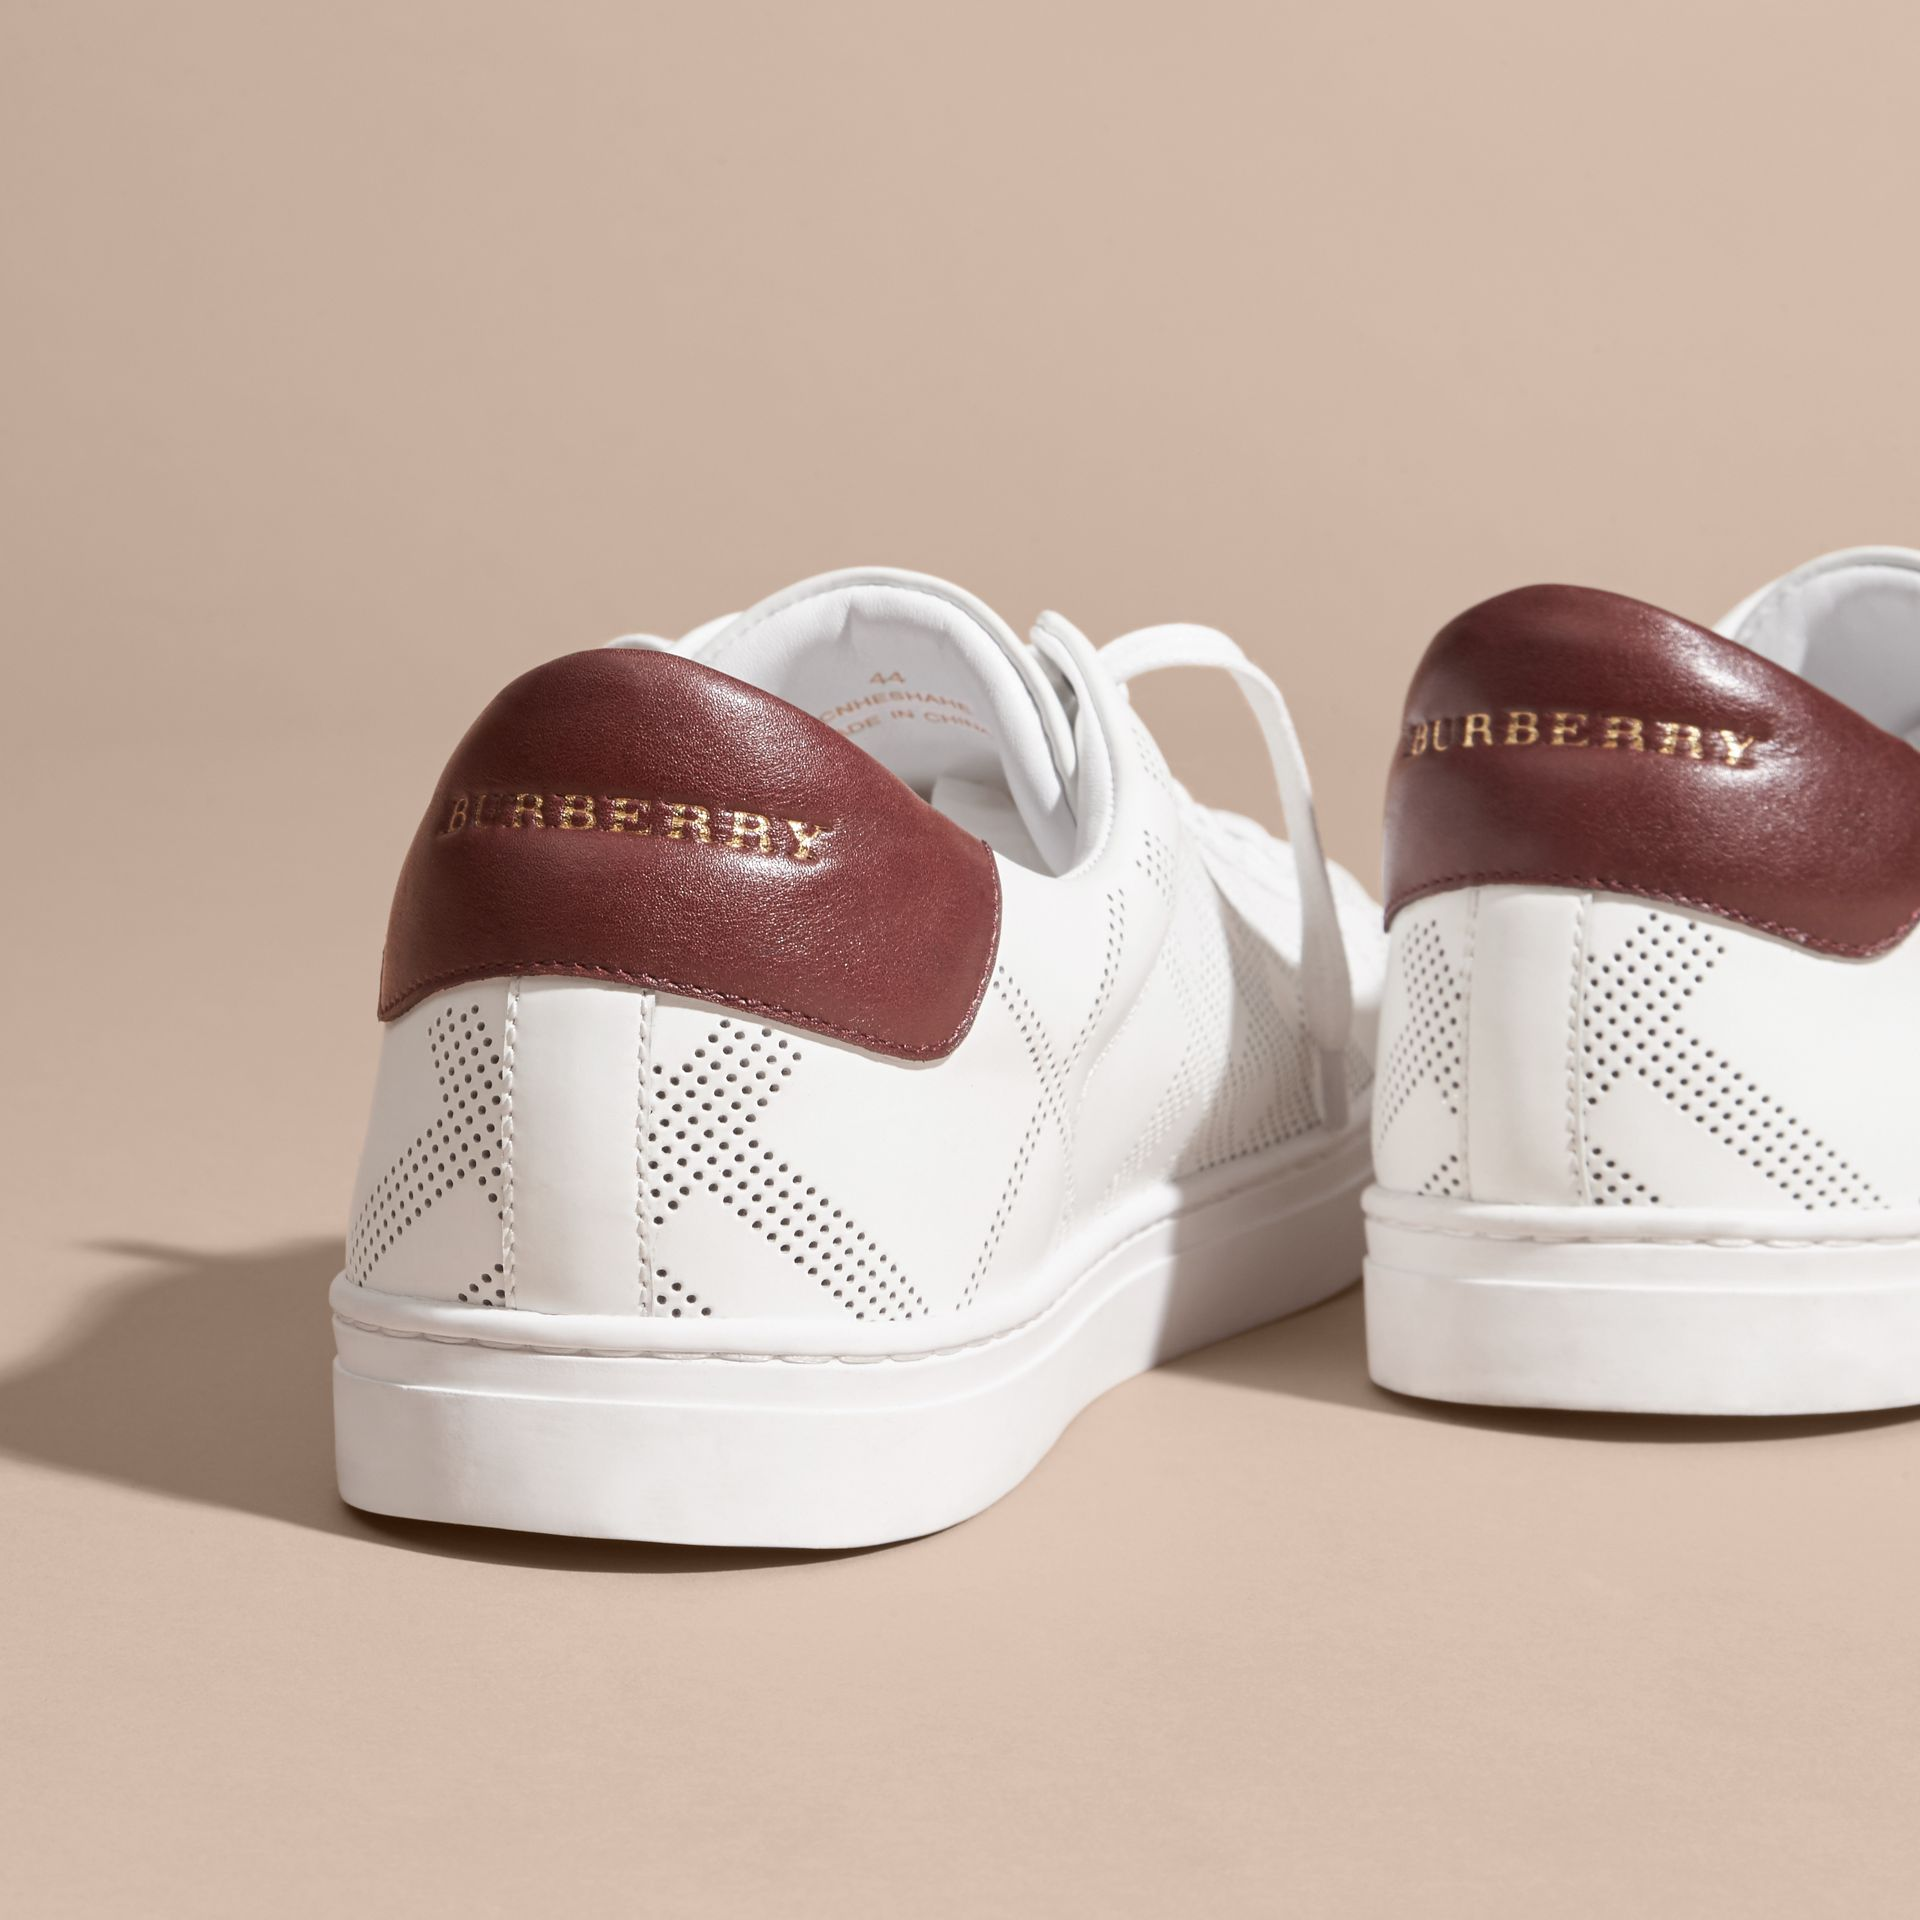 Perforated Check Leather Trainers Optic Whit/deep Claret - gallery image 4